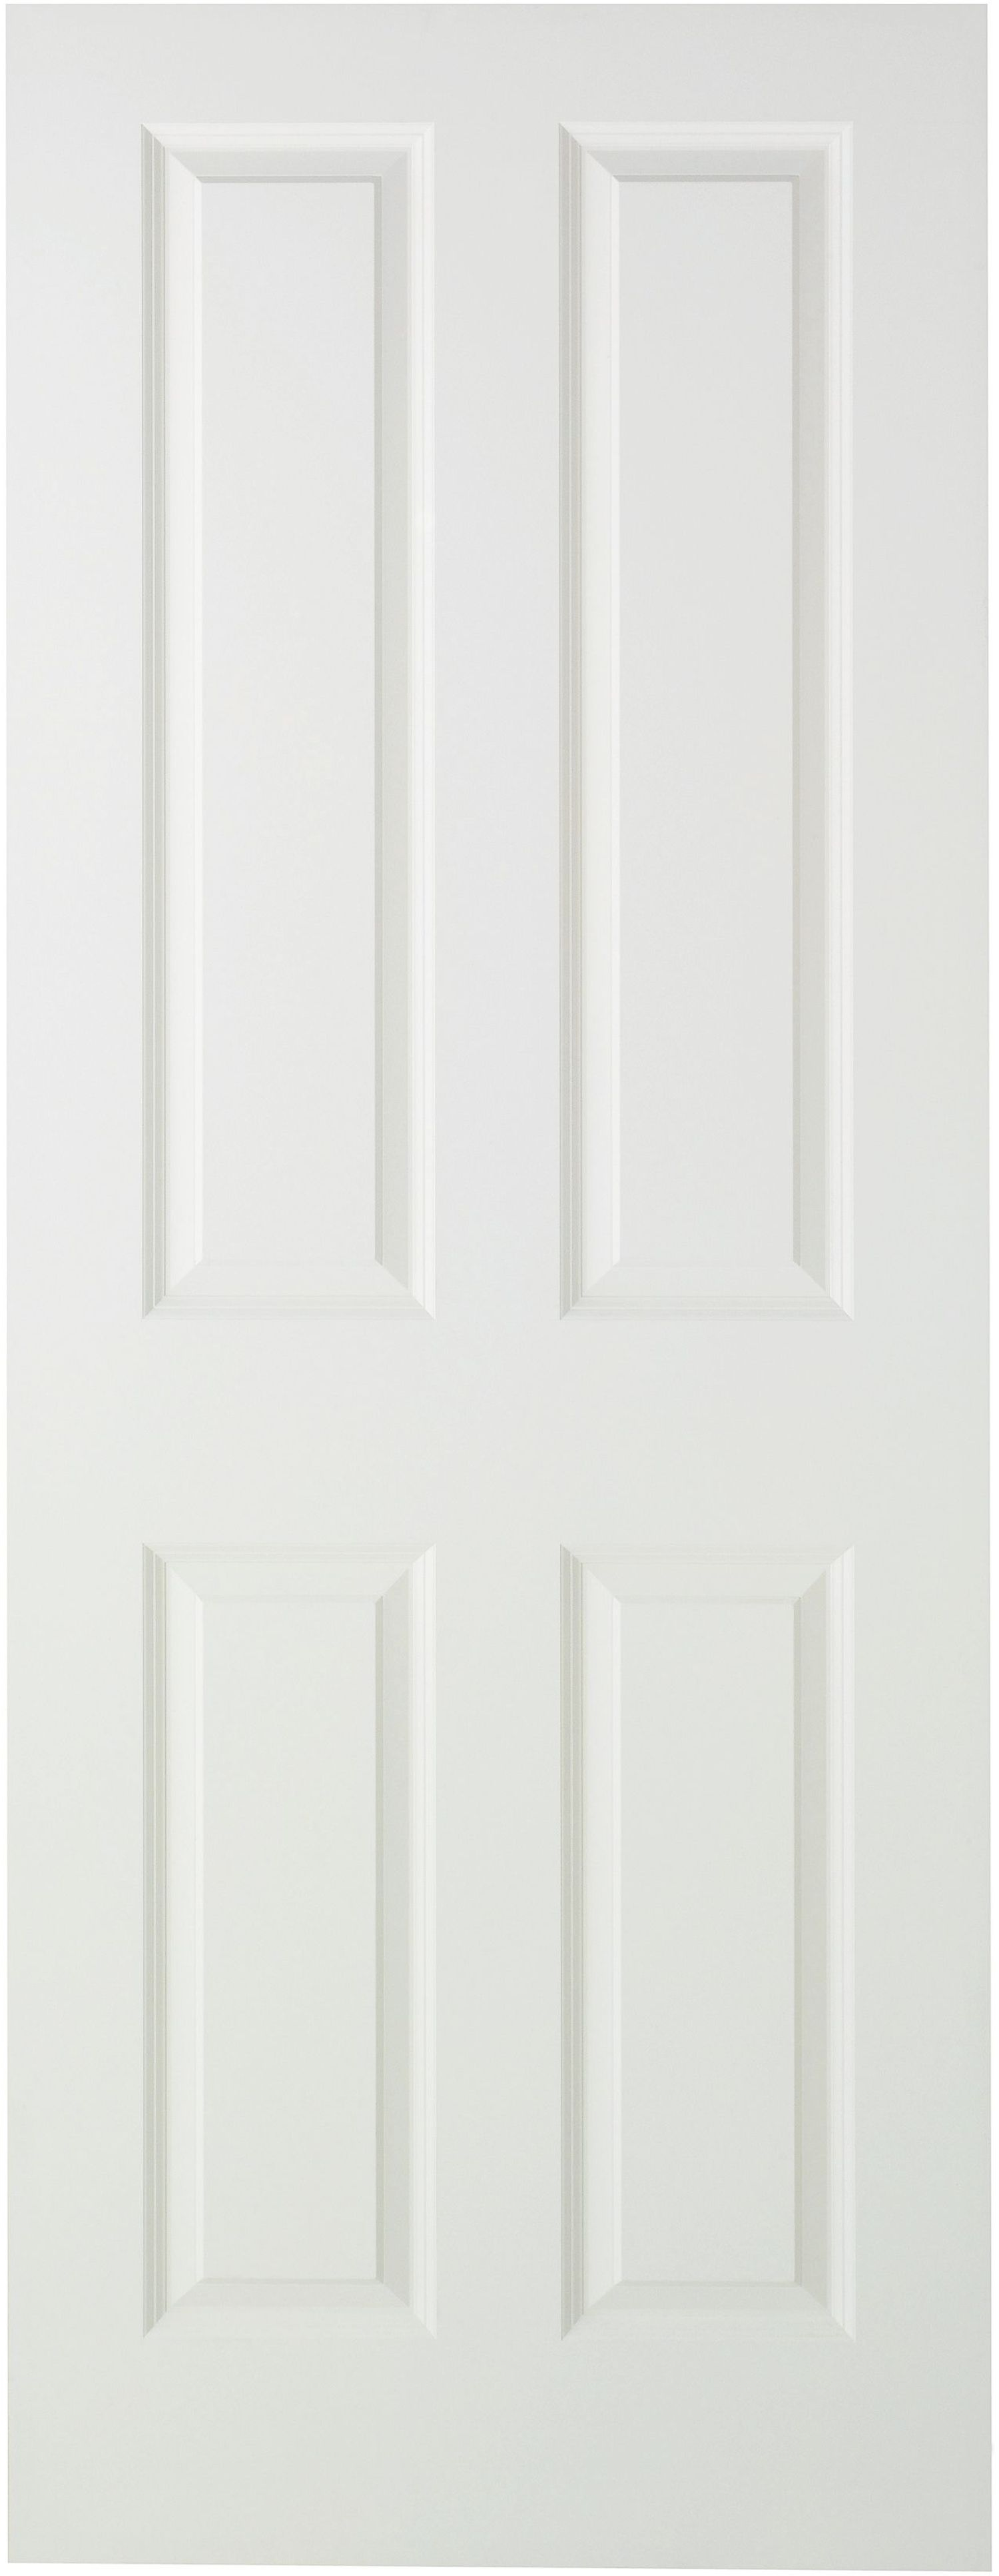 Wickes stirling internal moulded door white primed smooth 4 panel mouse over image for a closer  sc 1 st  STOKKELAND.INFO & Wicks Interior Doors Image collections - Doors Design Ideas pezcame.com